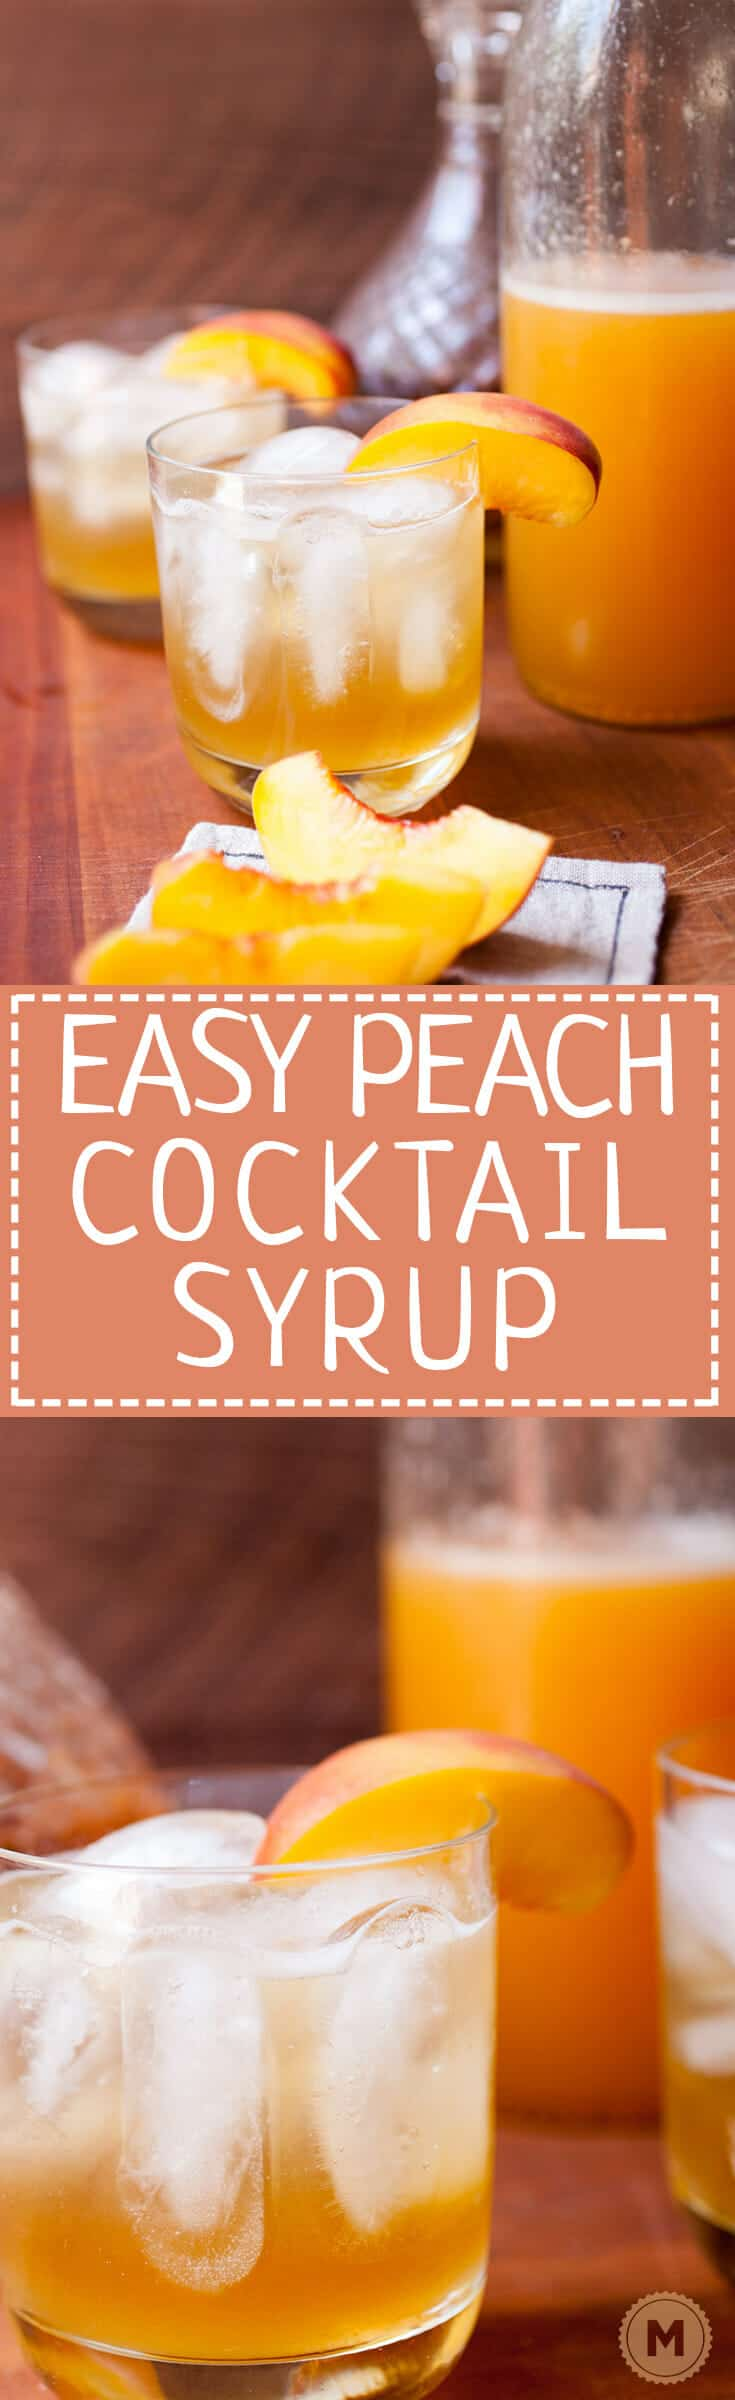 Easy Peach Cocktail Syrup: Just three ingredients (plus a pinch of salt) is all you need for this delicious seasonal cocktail syrup. I love it with a little gin or bourbon, but you can also make a delicious nonalcoholic beverage with club soda! Cheers! | macheesmo.com